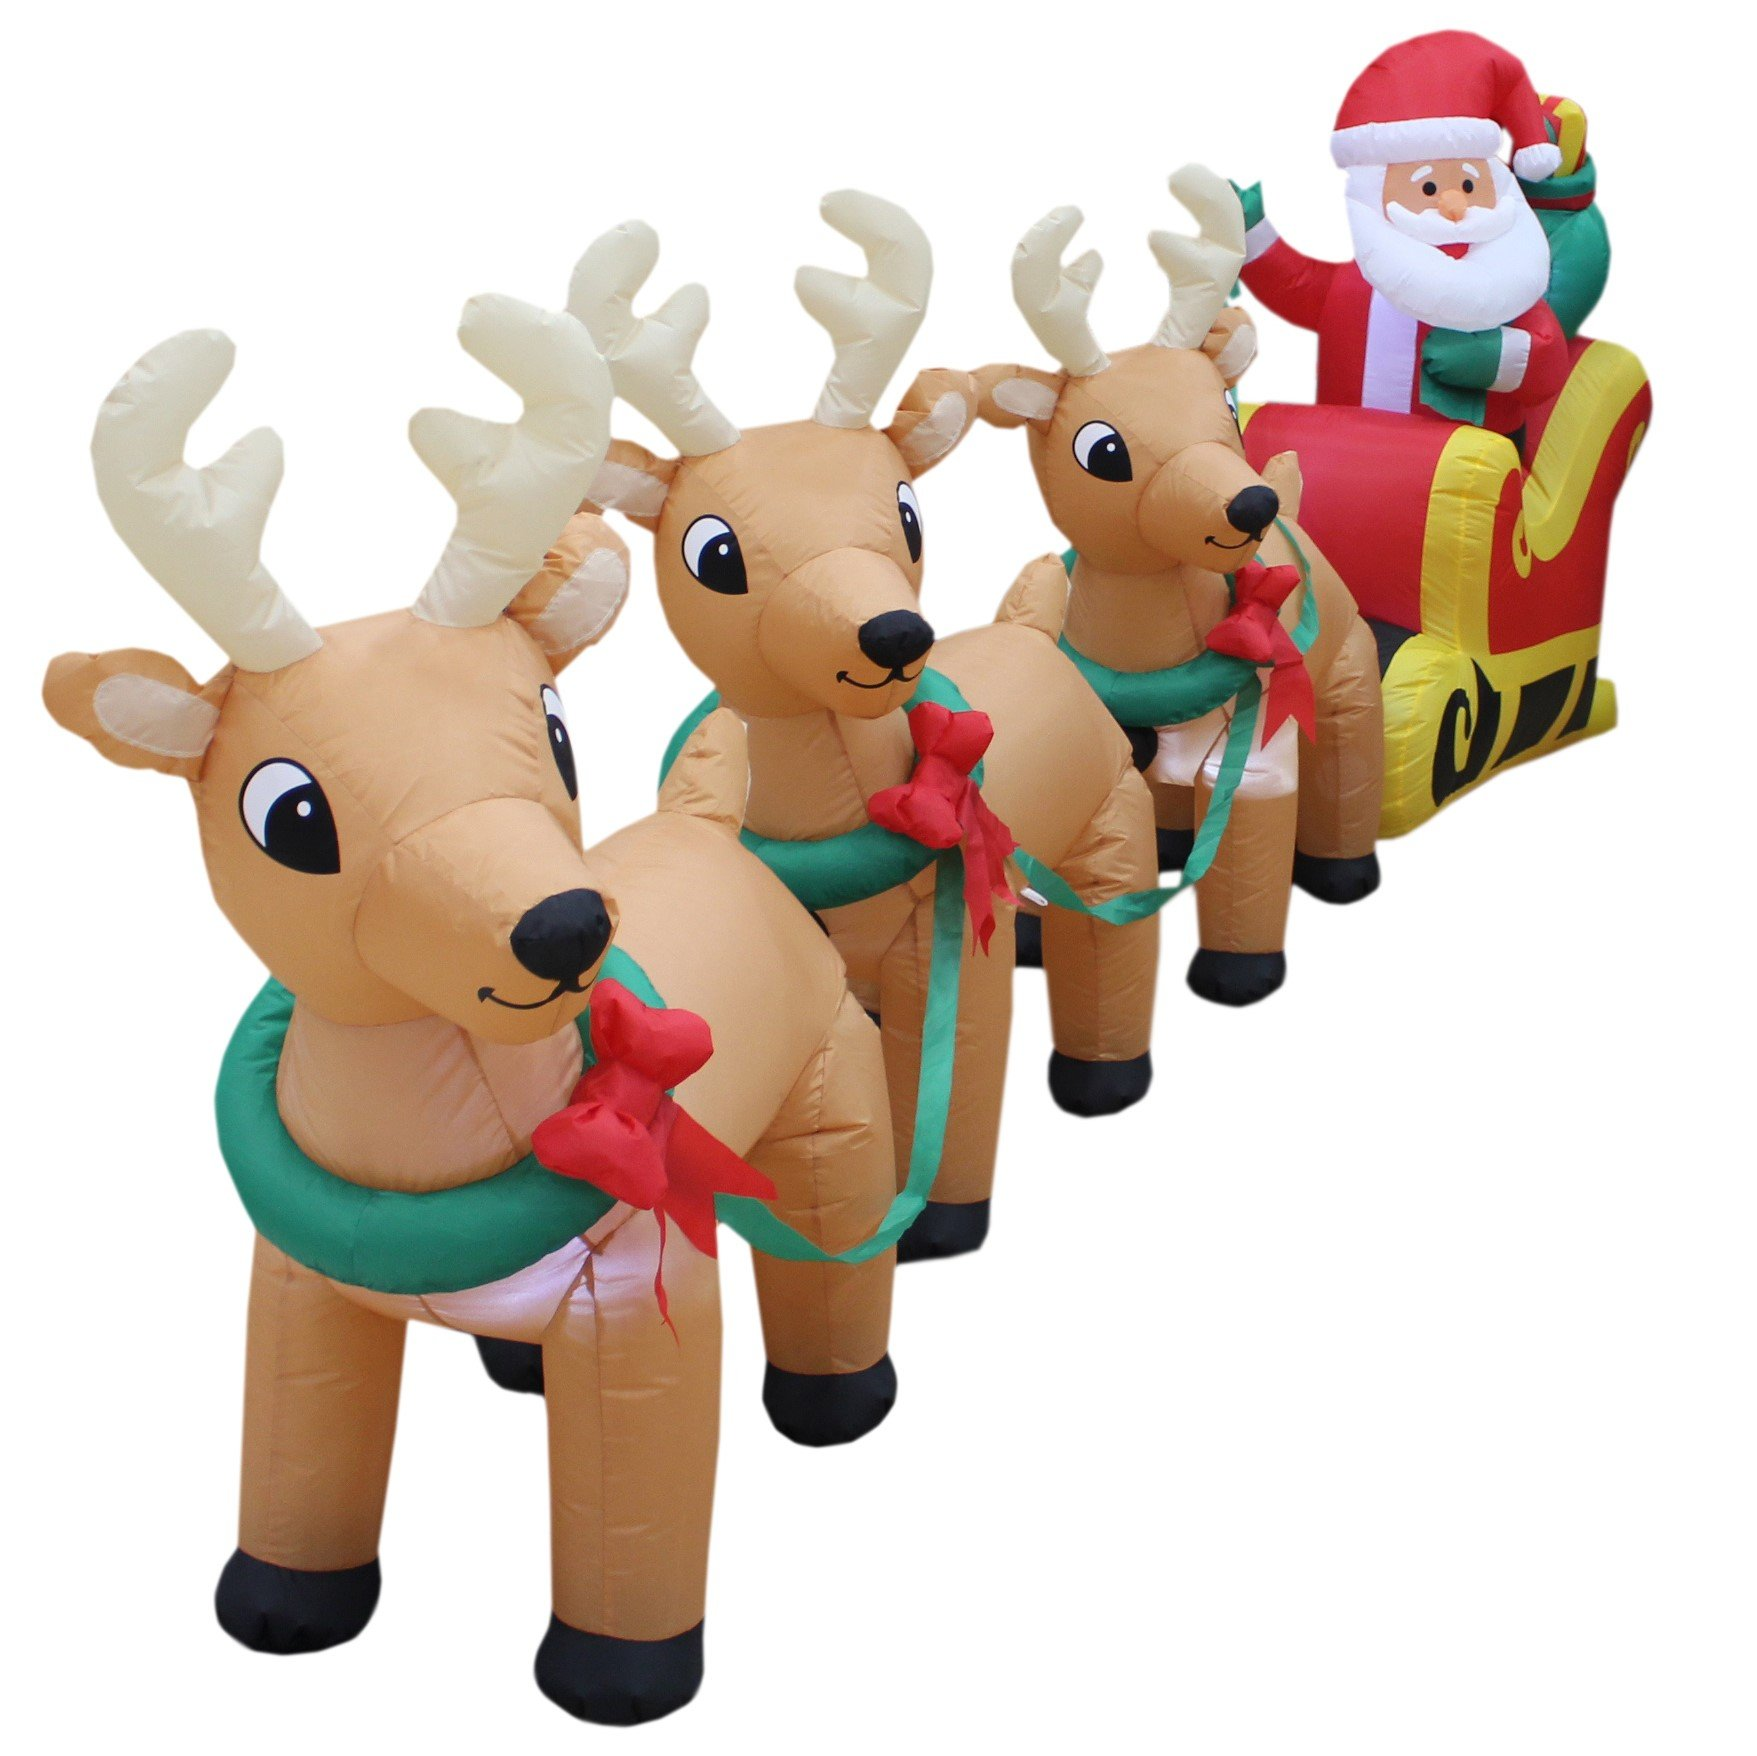 12 Foot Long Lighted Christmas Inflatable Santa Claus on Sleigh with 3 Reindeer and Christmas Tree Yard Decoration by BZB Goods (Image #2)